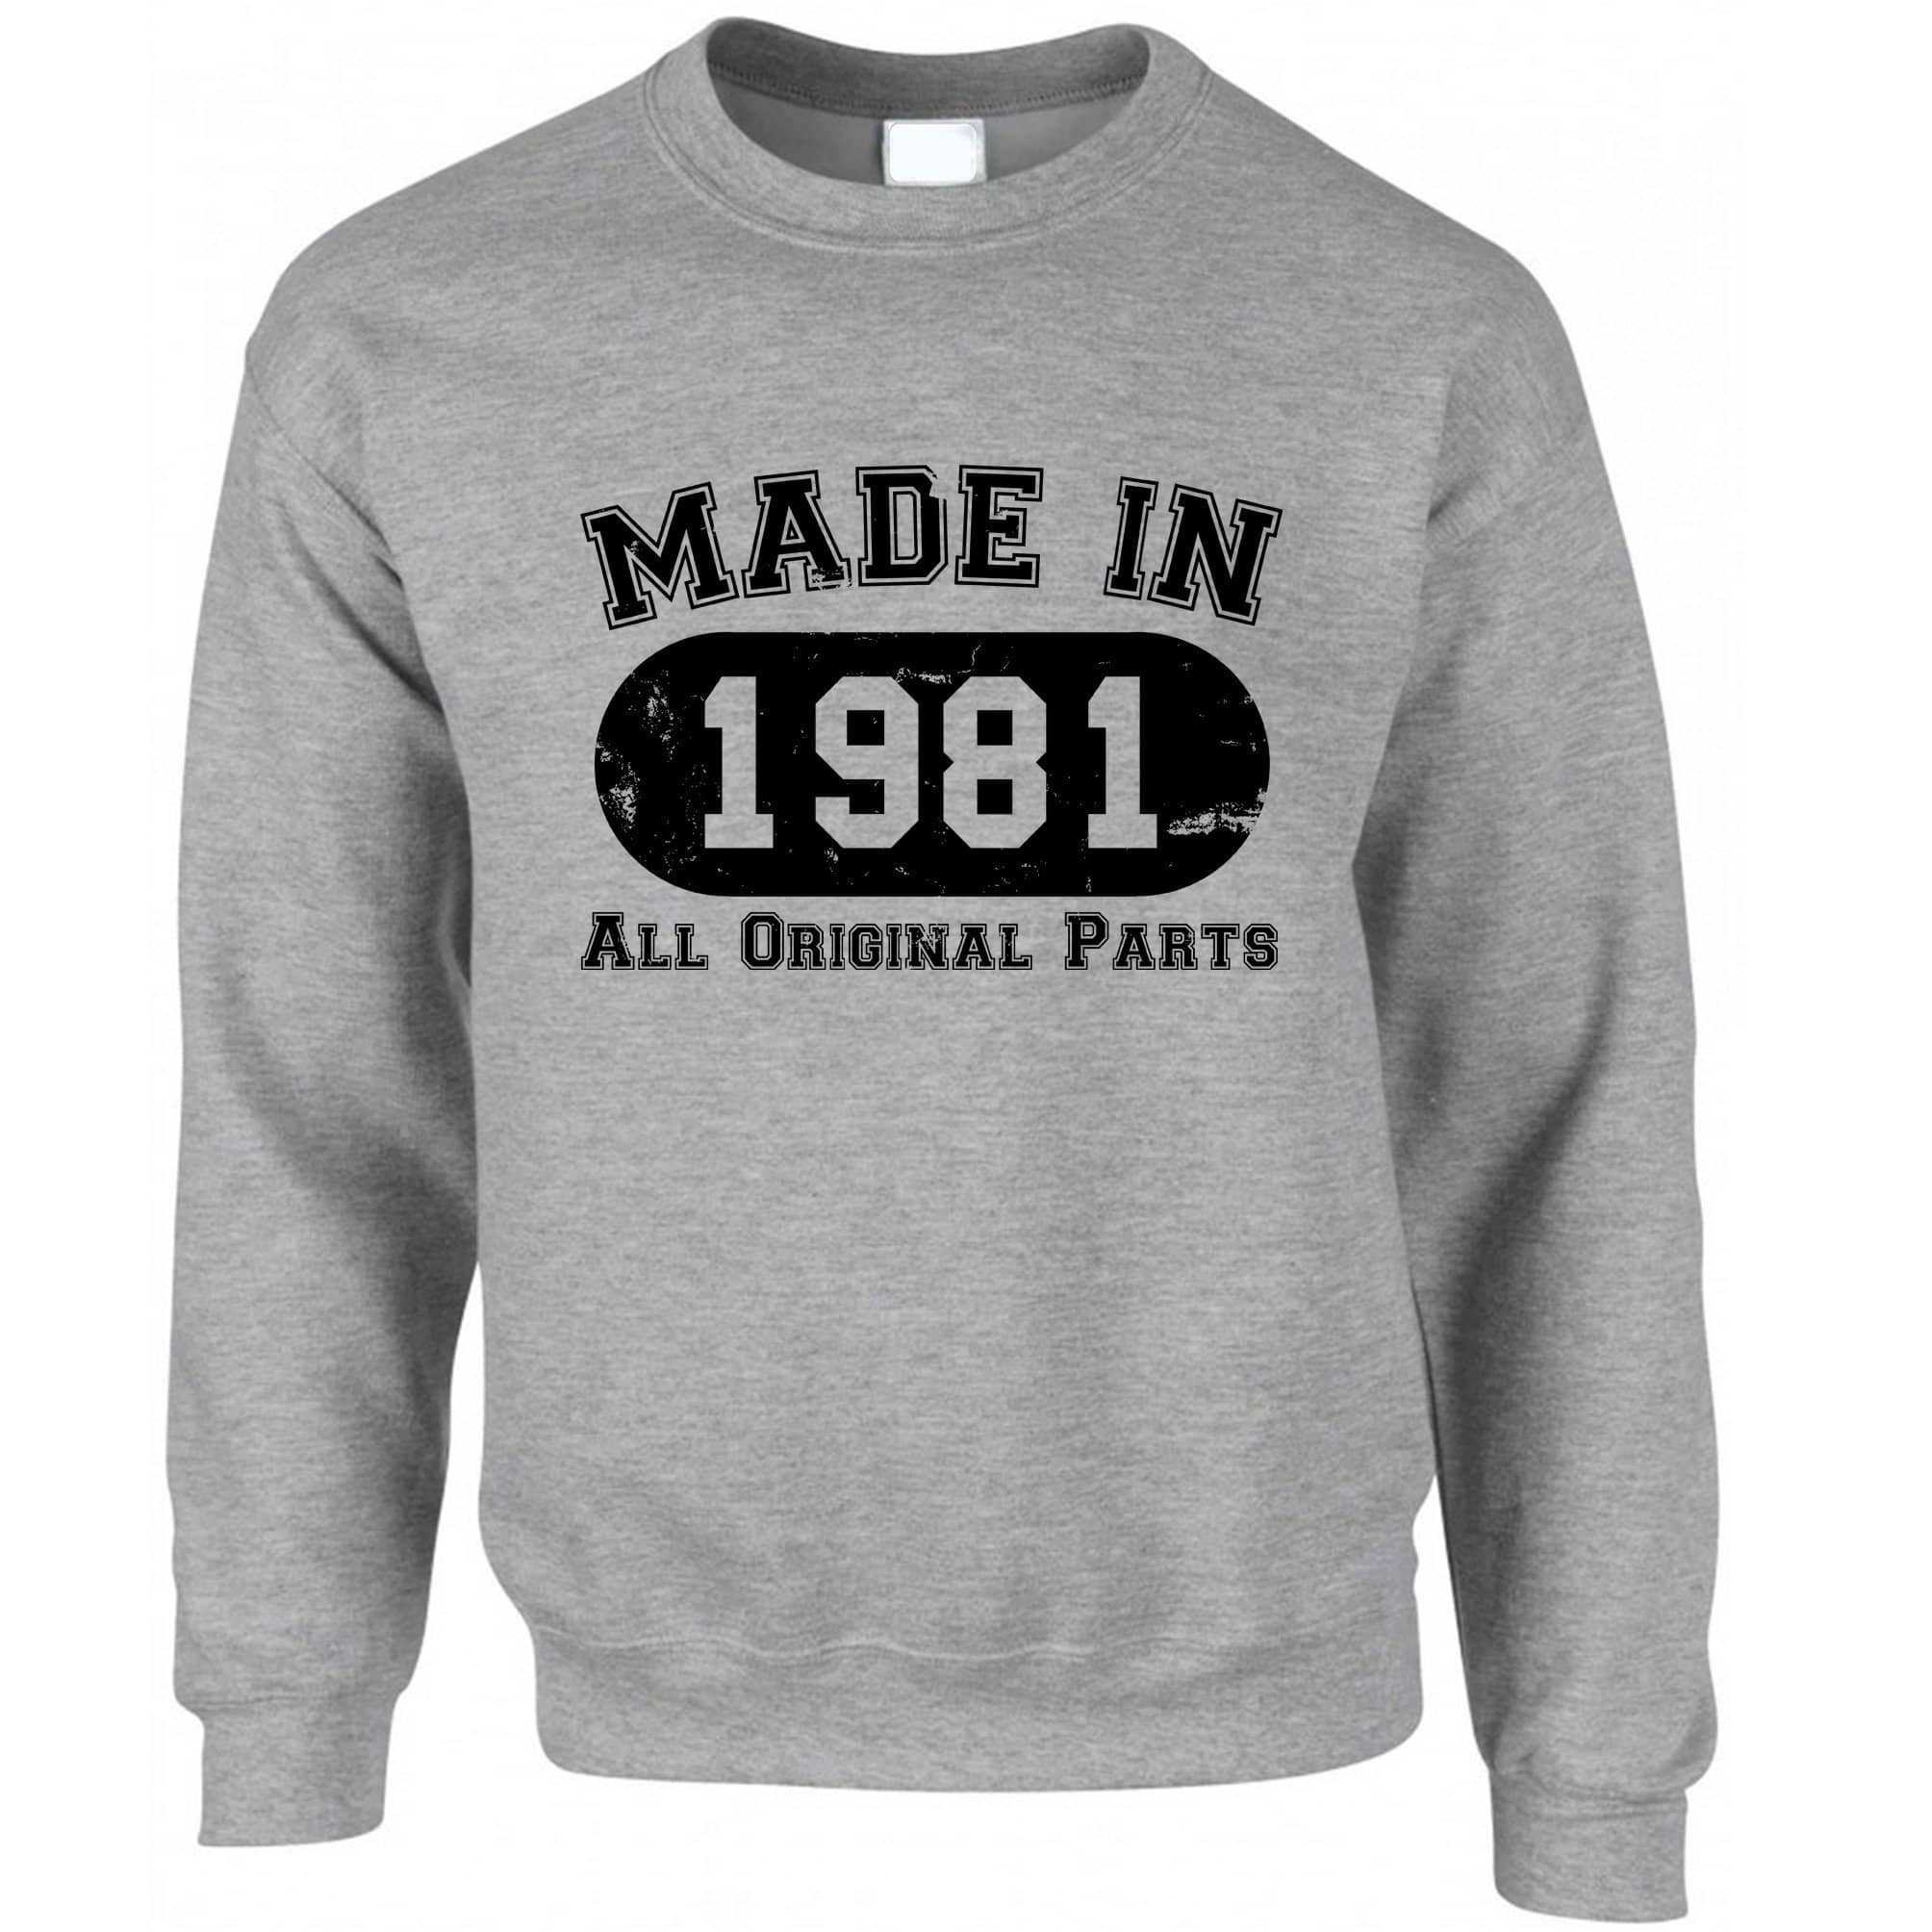 Made in 1981 All Original Parts Sweatshirt Jumper [Distressed]